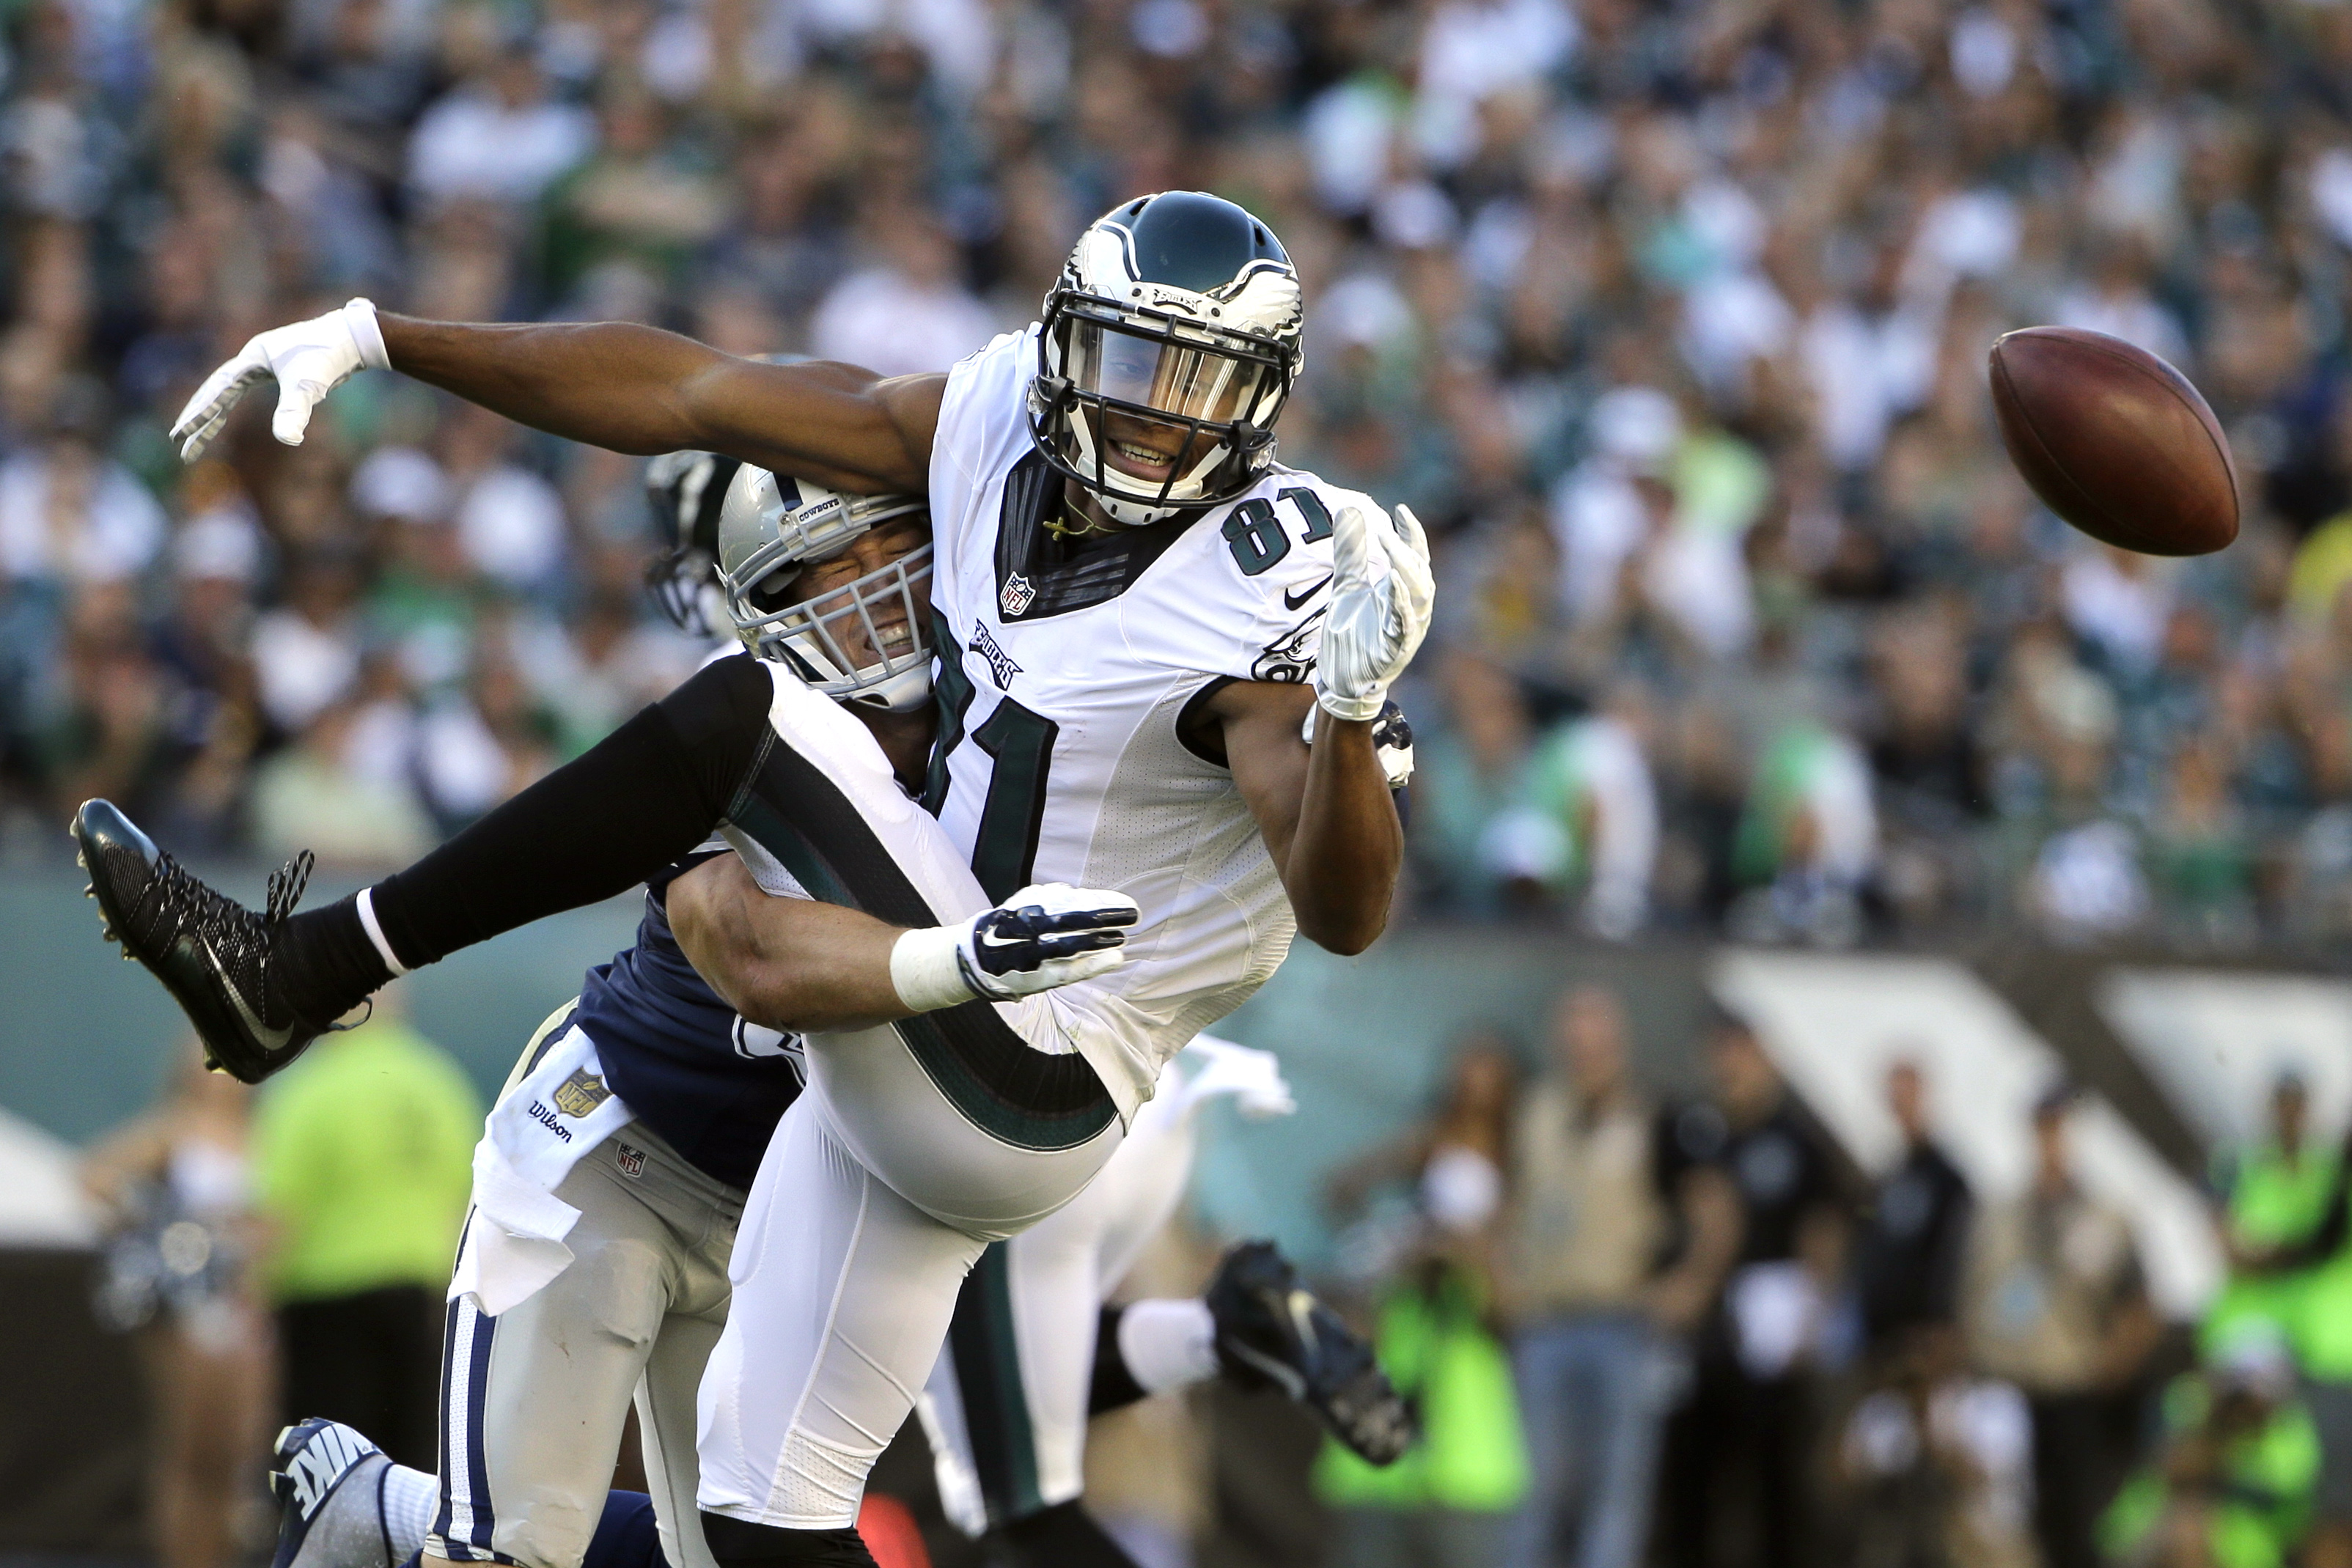 Philadelphia Eagles' Jordan Matthews, right, cannot catch a pass from Sam Bradford as he is hit by Dallas Cowboys' Sean Lee during the first half of an NFL football game, Sunday, Sept. 20, 2015, in Philadelphia. (AP Photo/Matt Rourke)